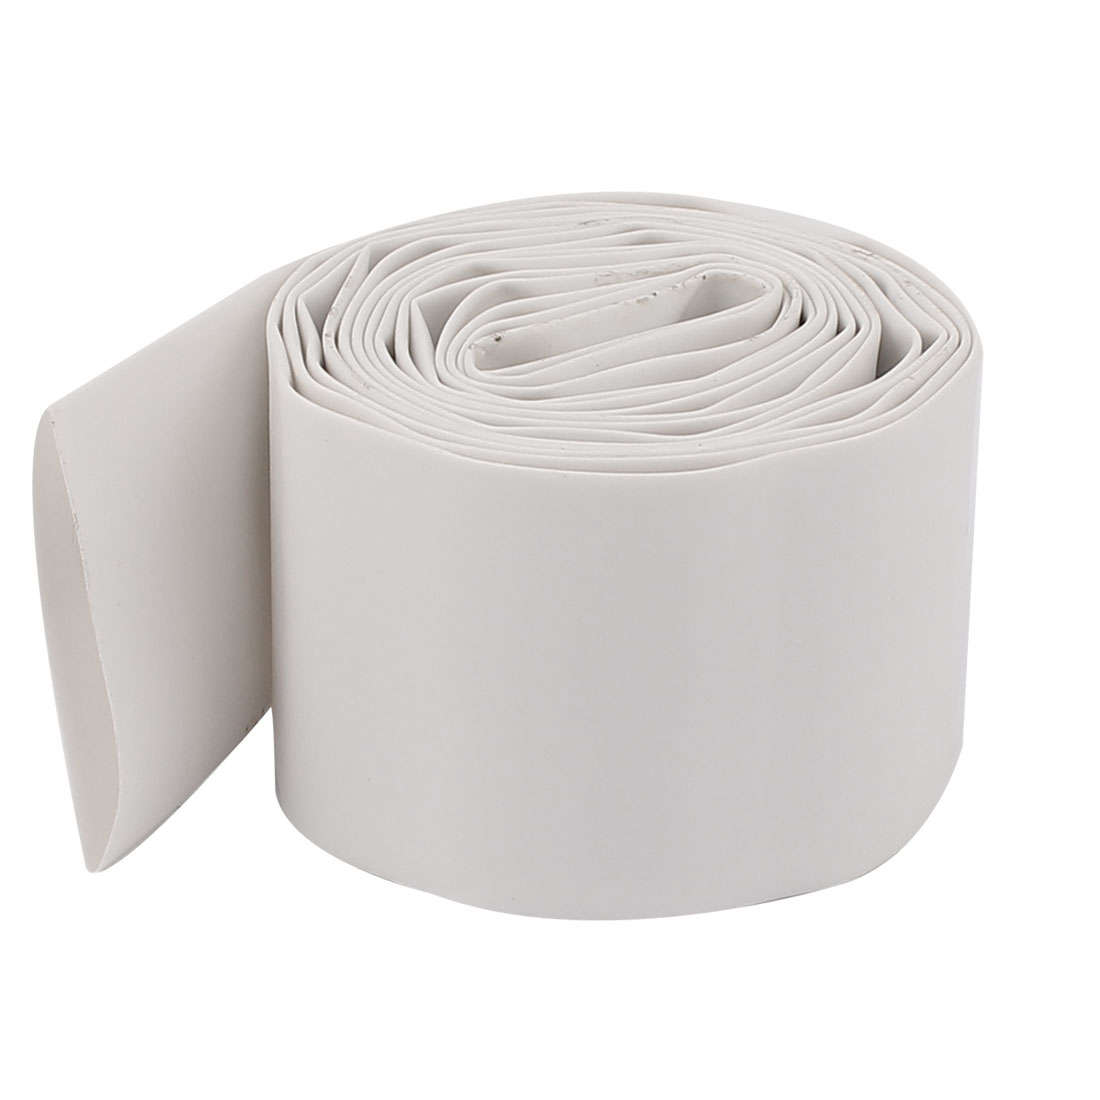 2 Meter Diameter 25mm Heat Shrink Tubing Shrinkable Tube White